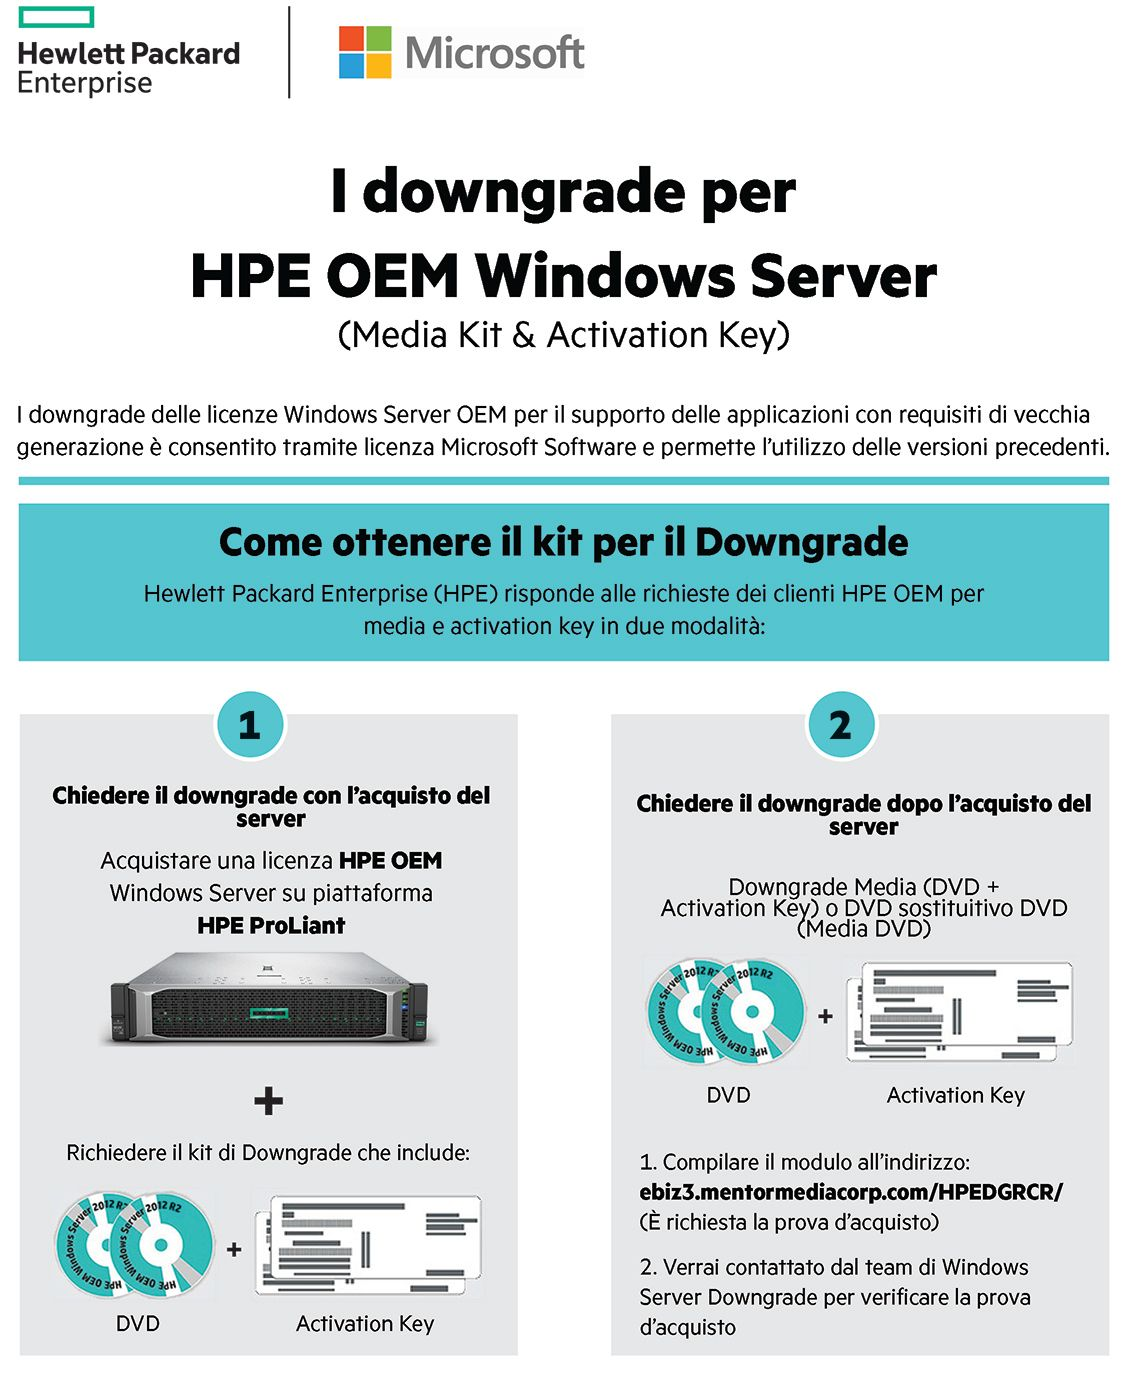 Downgrade infographic (editable).jpg